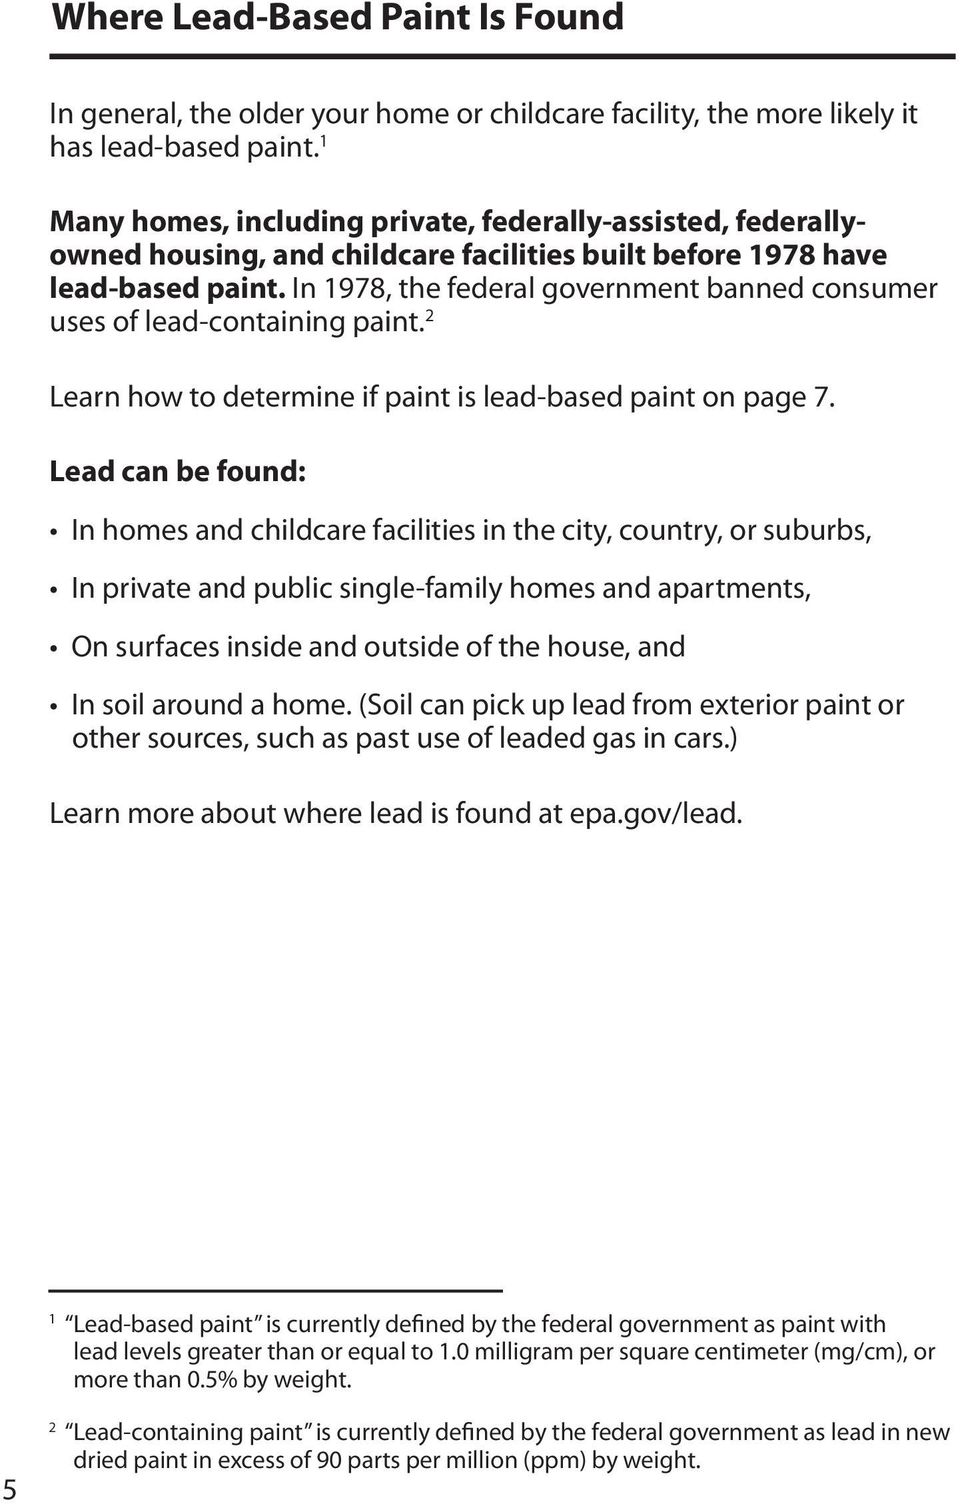 In 1978, the federal government banned consumer uses of lead-containing paint. 2 Learn how to determine if paint is lead-based paint on page 7.